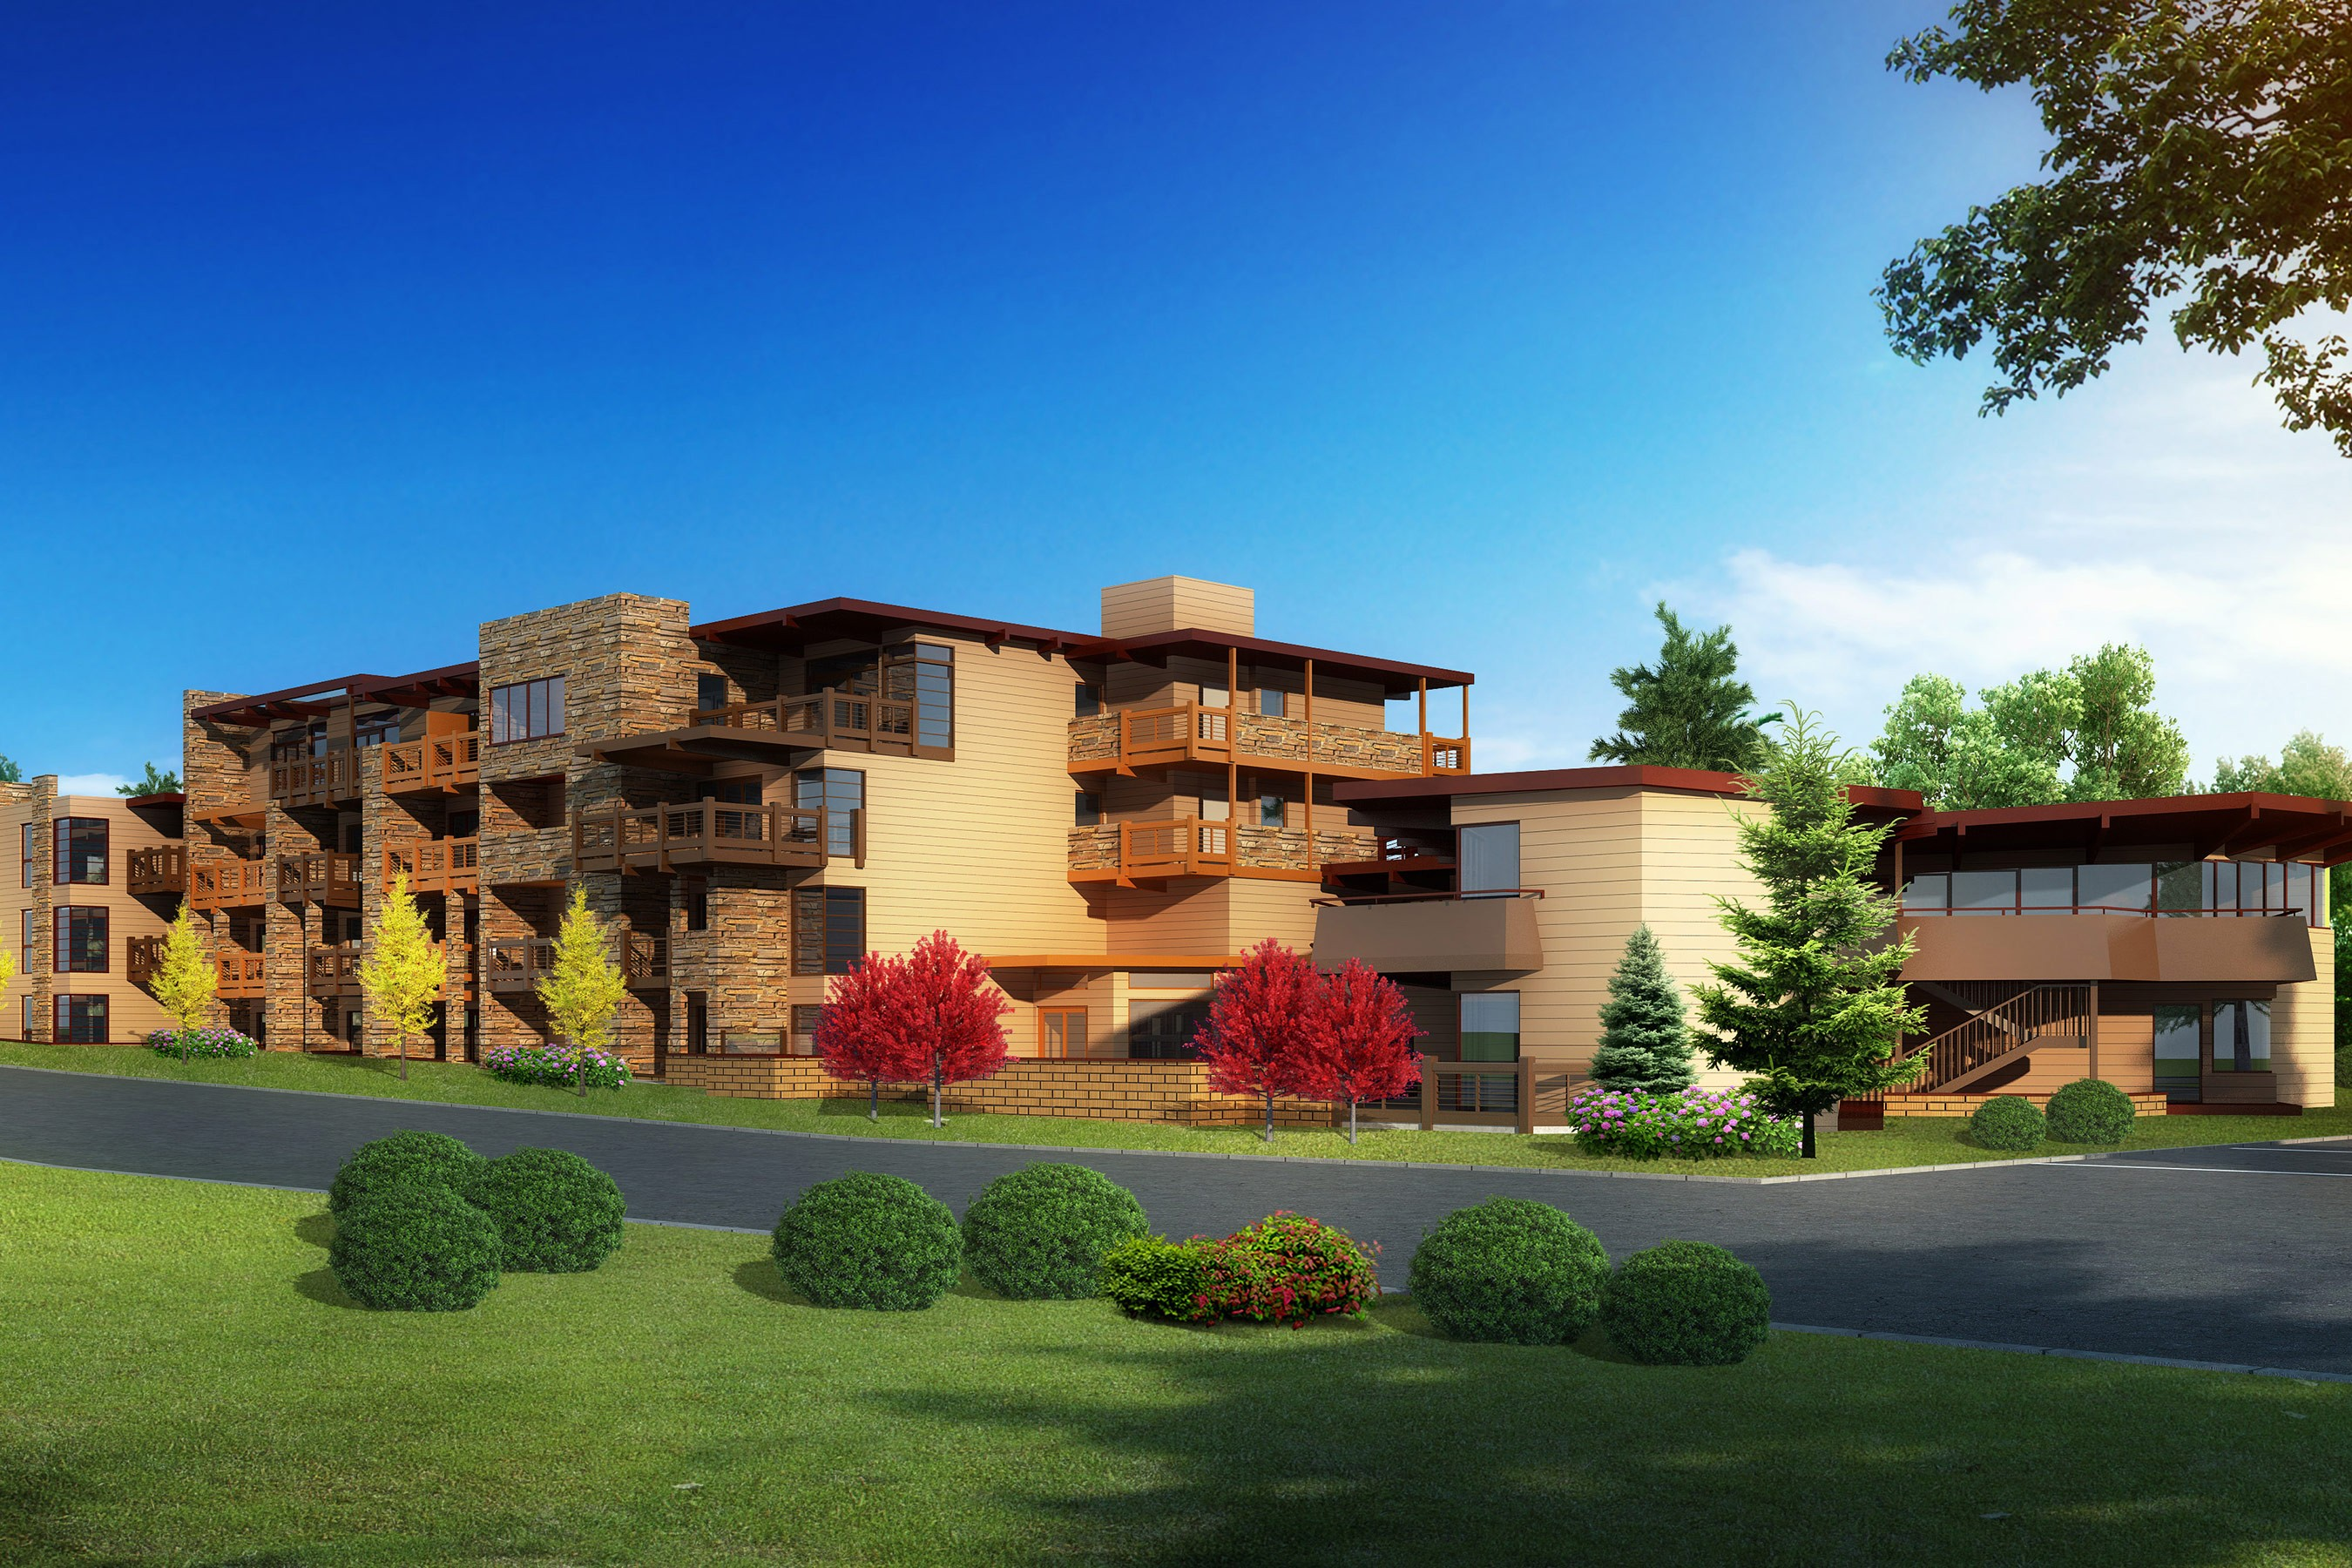 Condominium for Sale at Boomerang Lodge 500 W. Hopkins Avenue Unit 113 Aspen, Colorado, 81611 United States